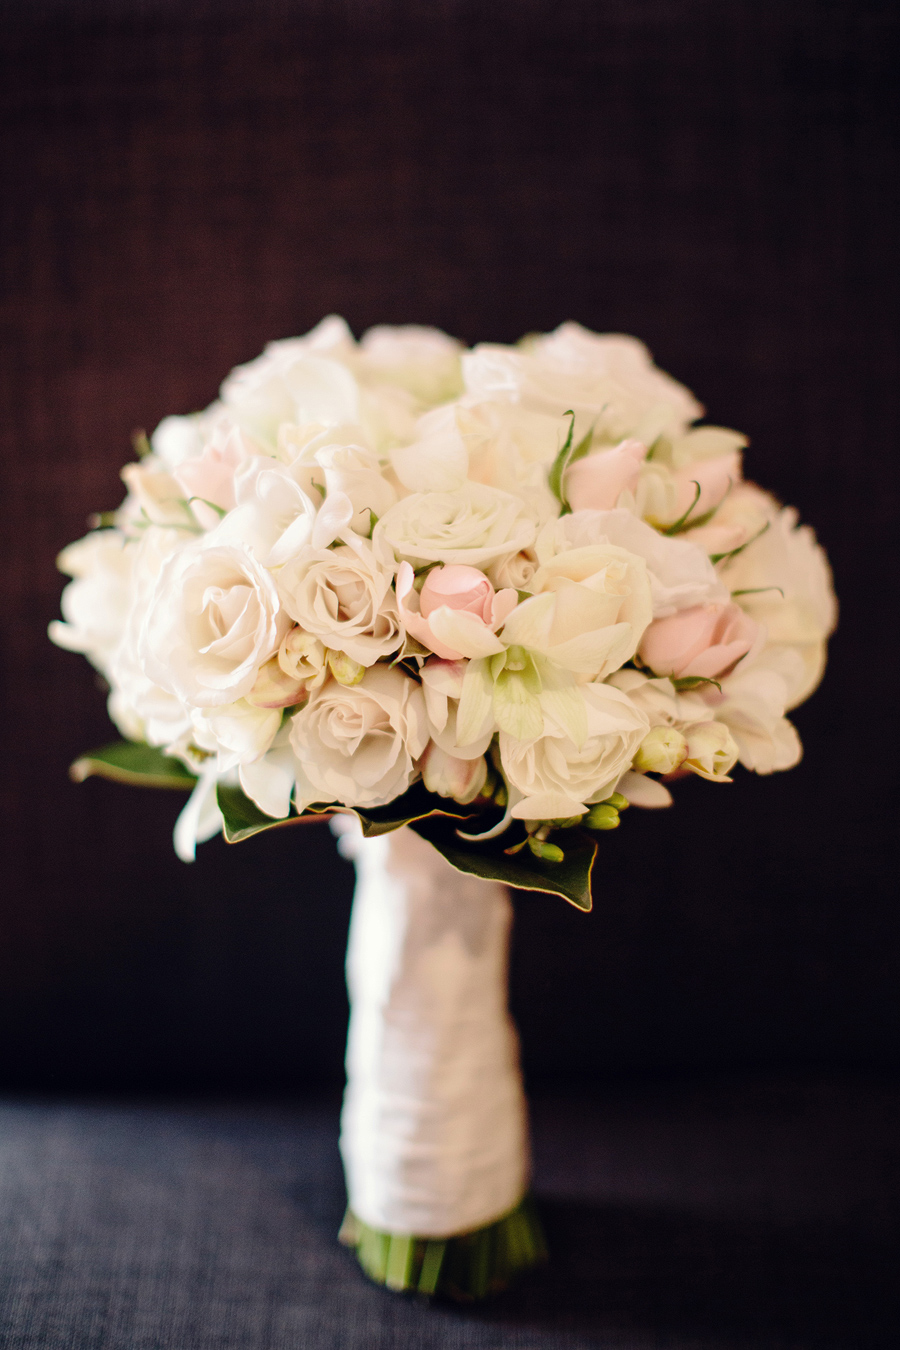 Sydney Wedding Photography: Bridal bouquet